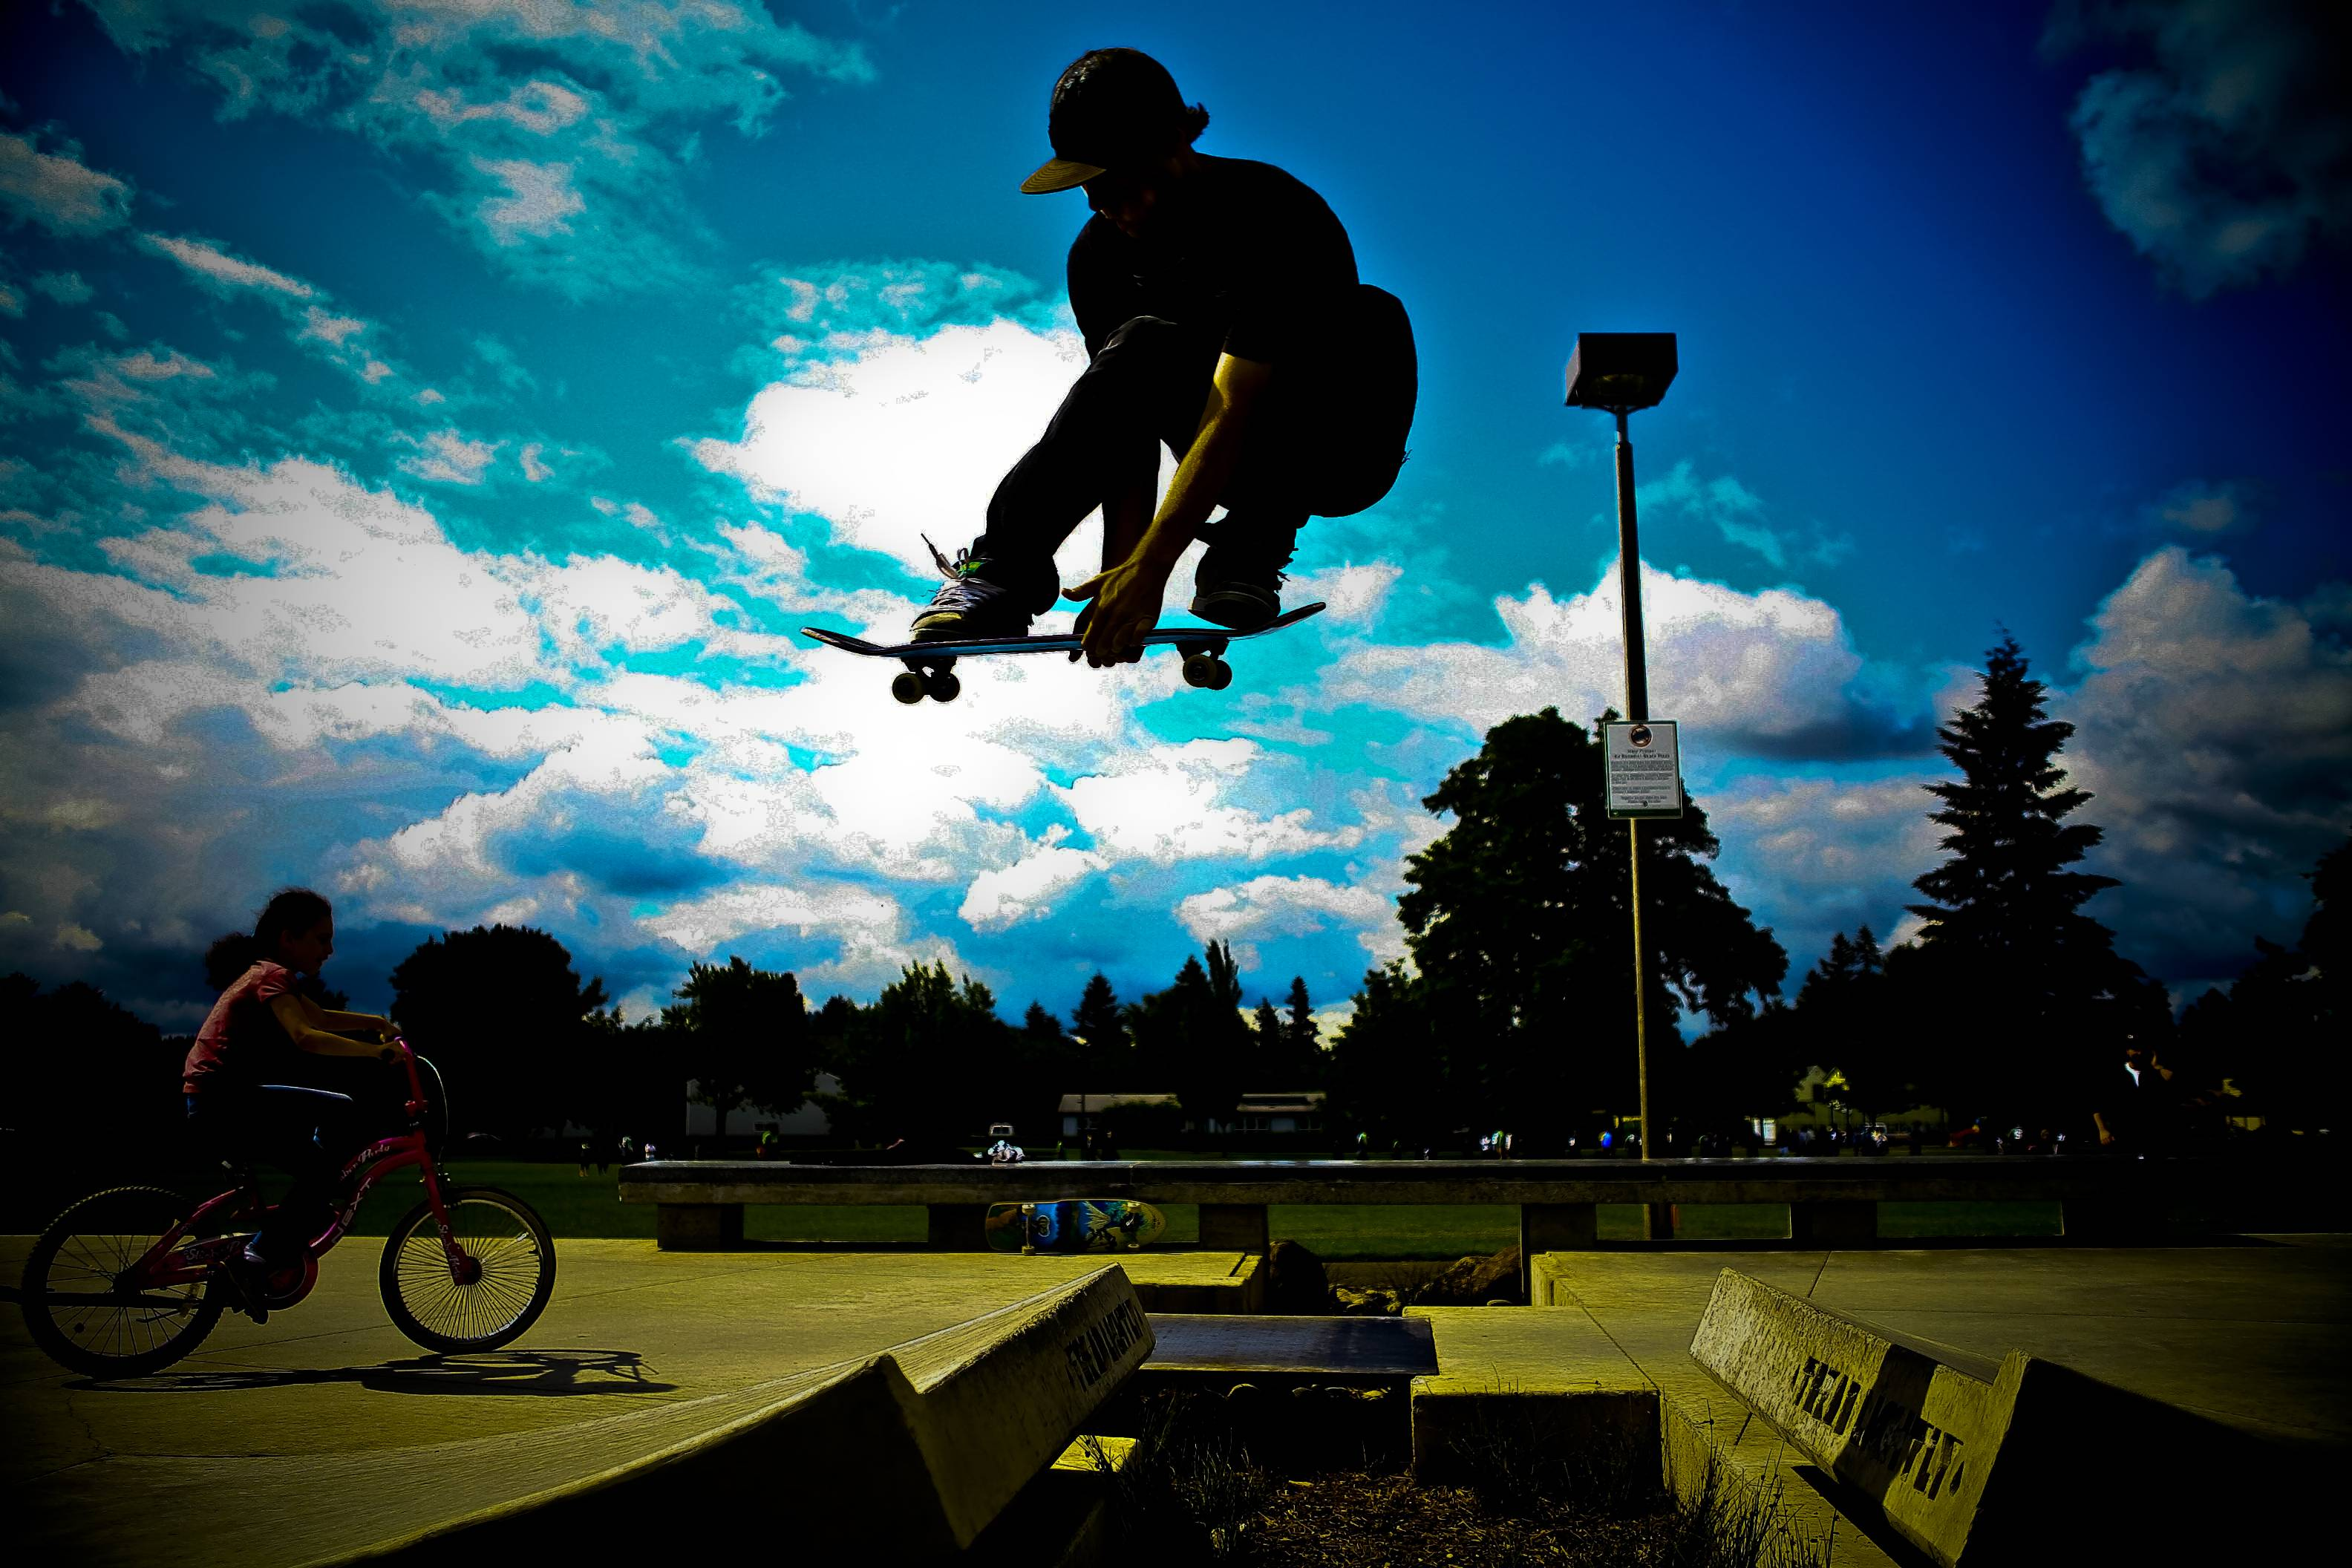 vans skateboard wallpaper 3d - photo #8